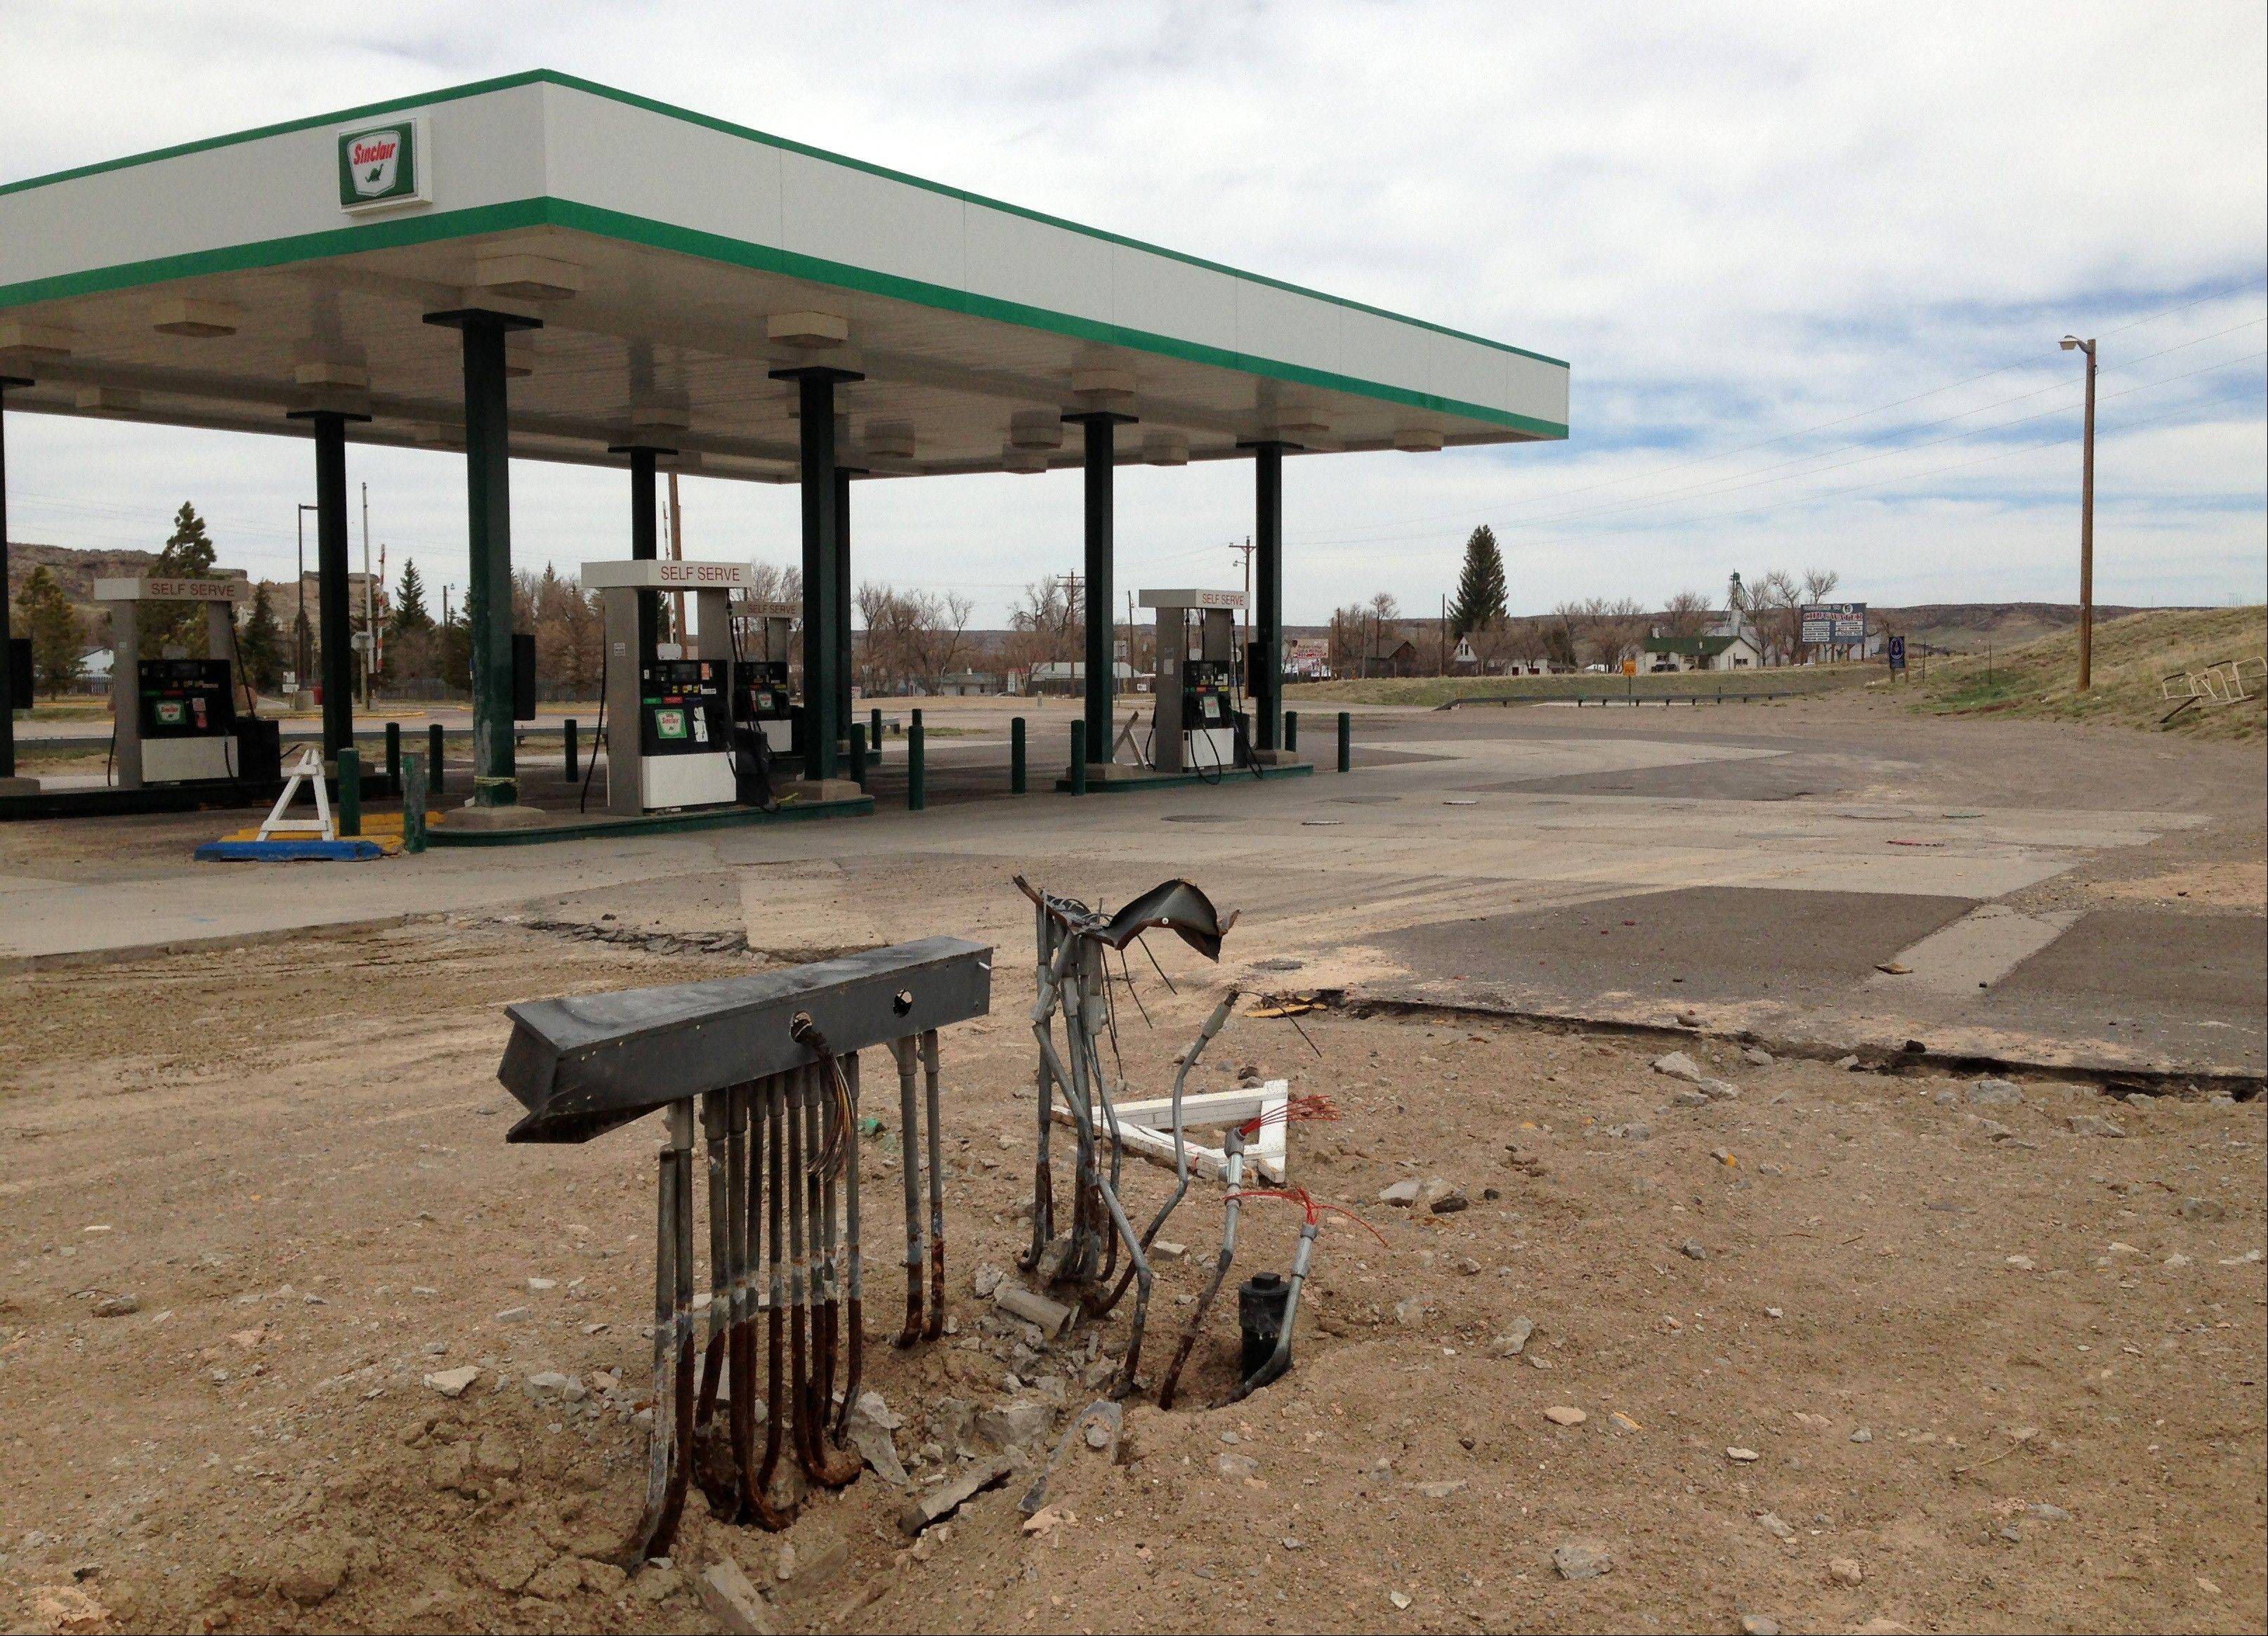 All that remains of the Horton's Corner convenience store, foreground in Chugwater, Wyo., after a Dec. 30, 2012 fire caused by a sport utility vehicle that crashed into the store. Horton's Corner was the only place for miles around to get gas or groceries and may not be rebuilt for several months yet.